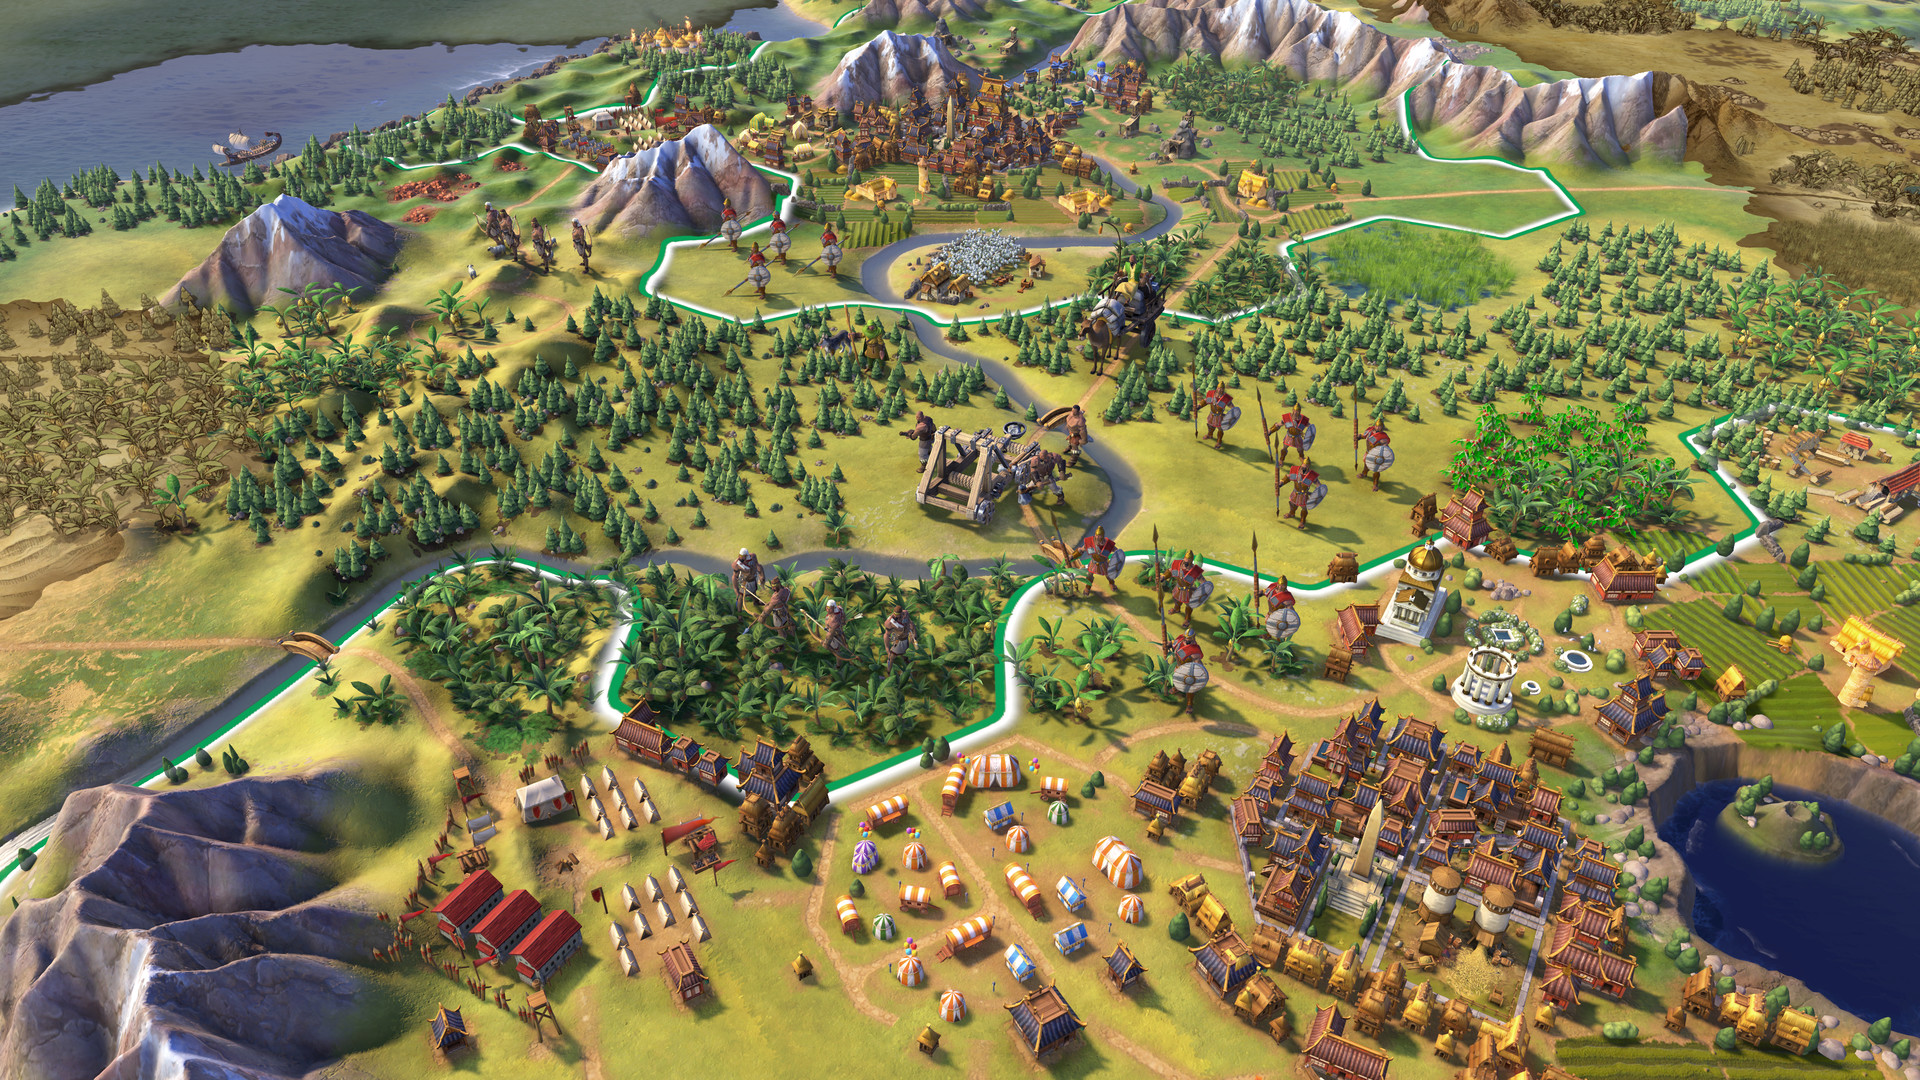 Civilization VI Is Coming To Xbox One And PlayStation 4, The Renowned Sid Meier Game Is Finally Coming To Console